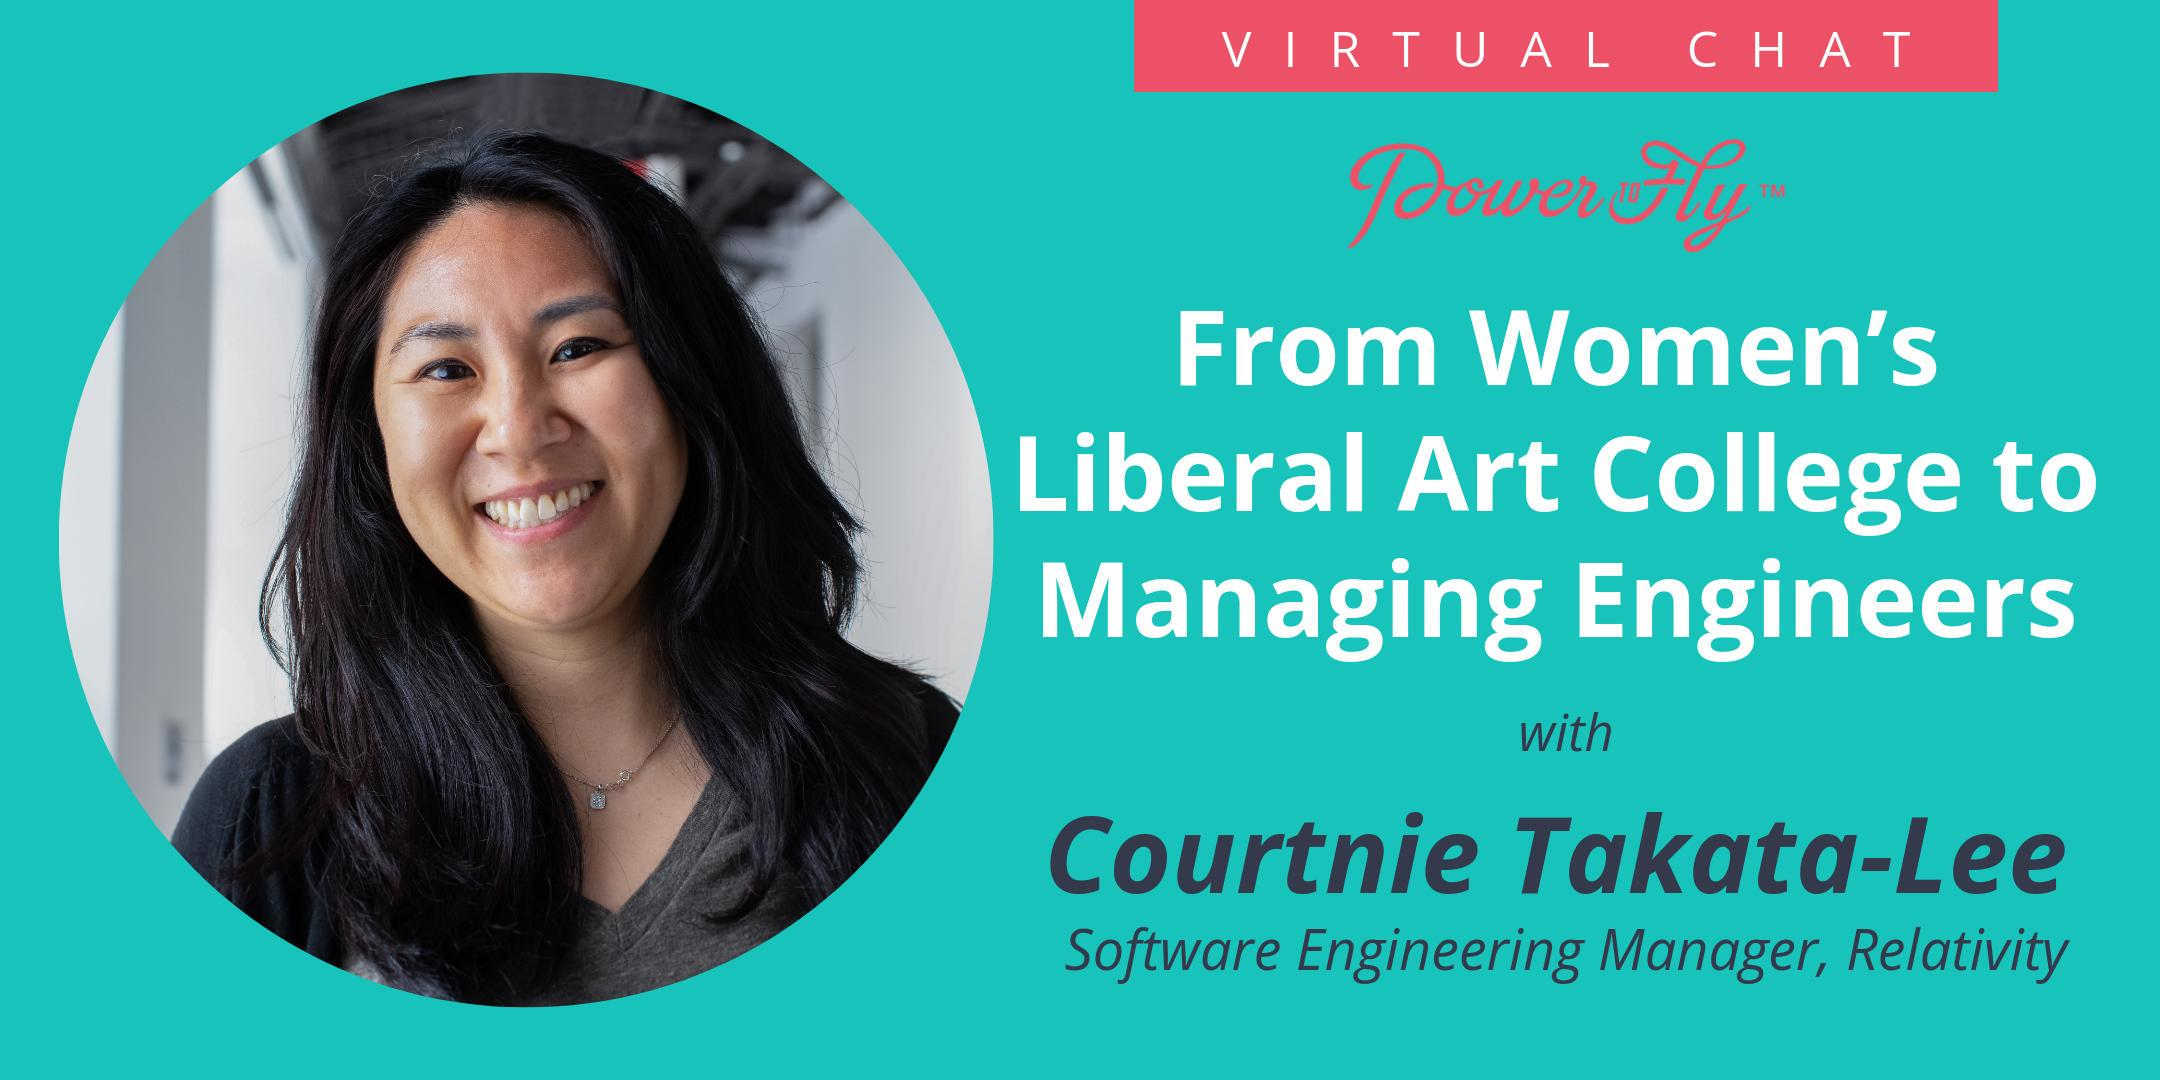 From Women's Liberal Art College to Managing Engineers